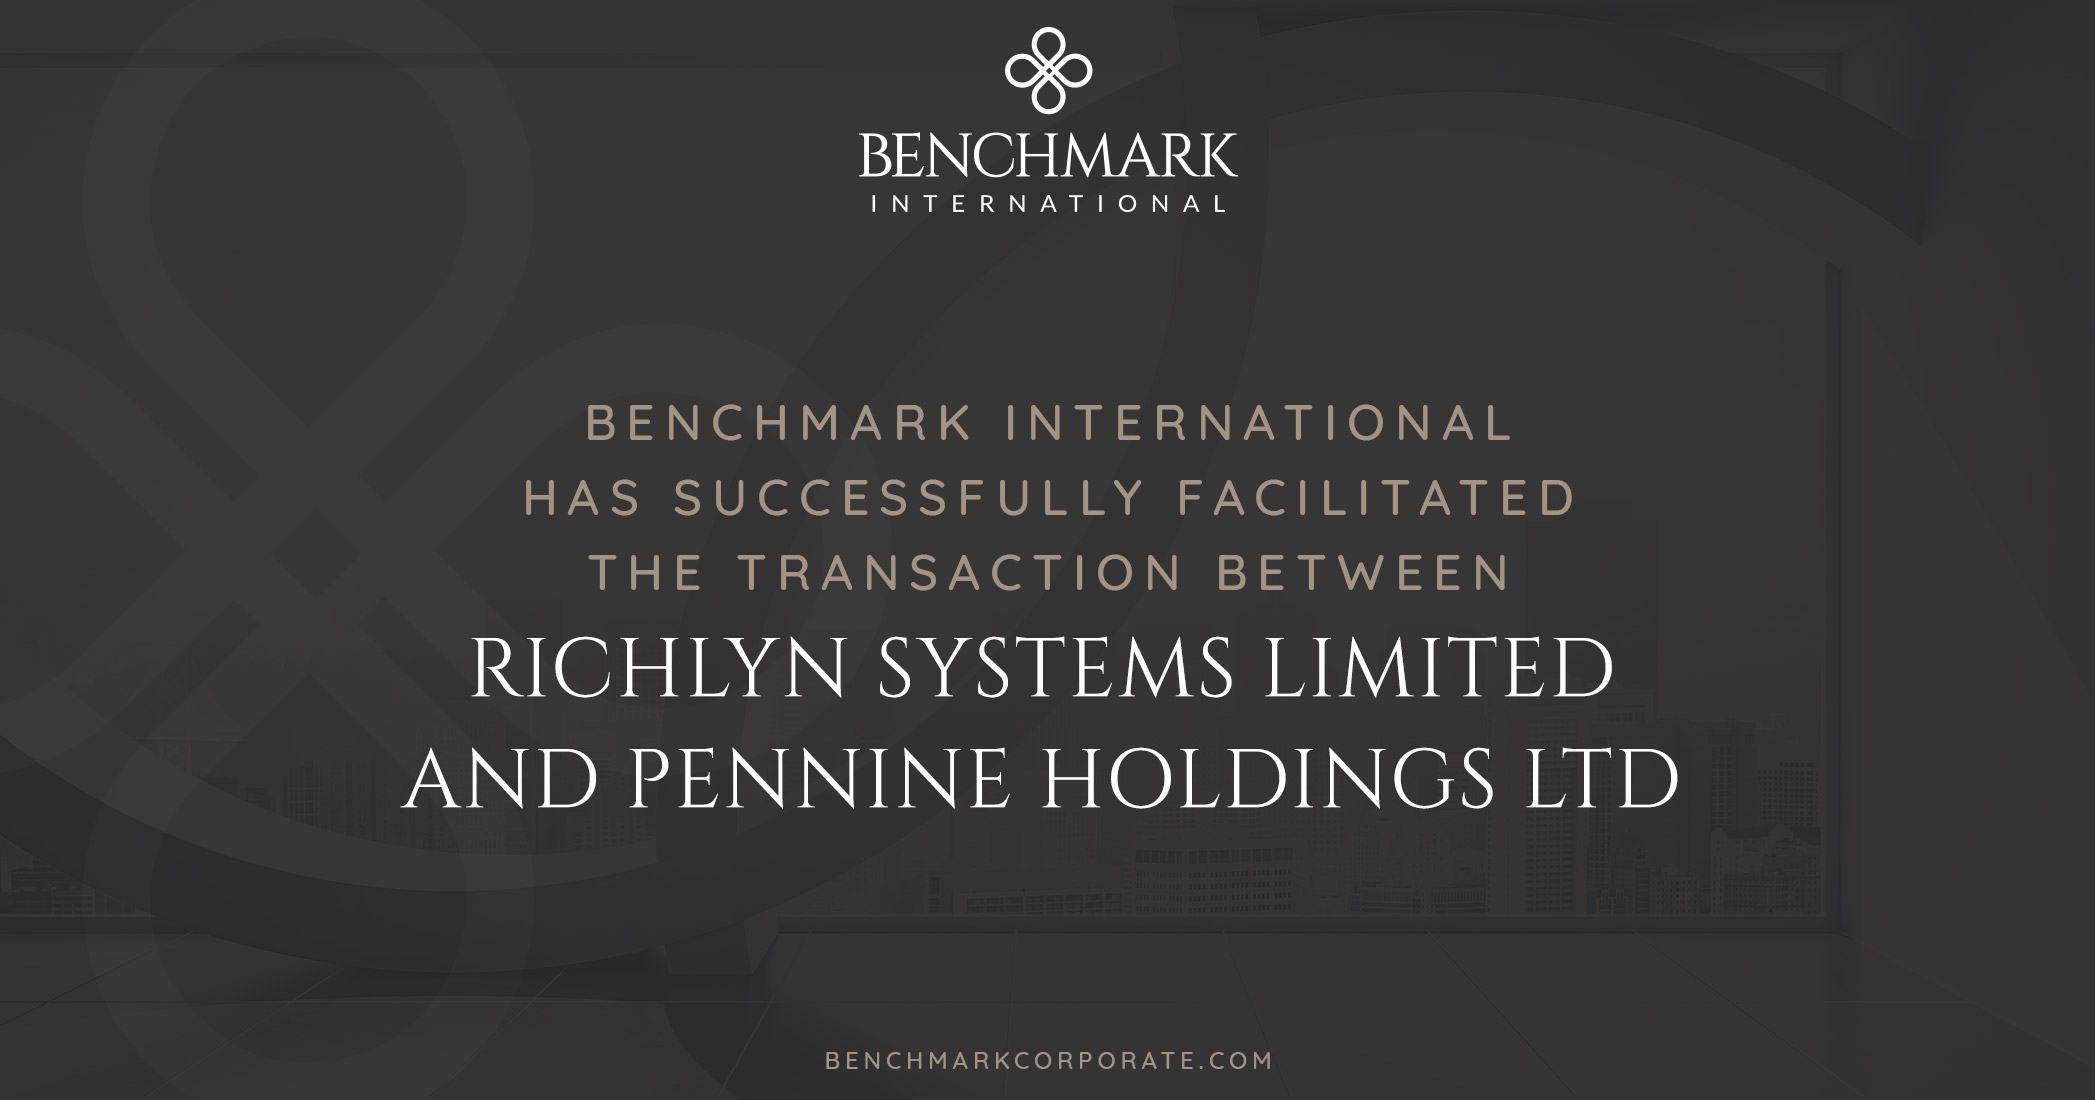 Benchmark International has Successfully Facilitated the Transaction Between Richlyn Systems Limited and Pennine Holdings Ltd